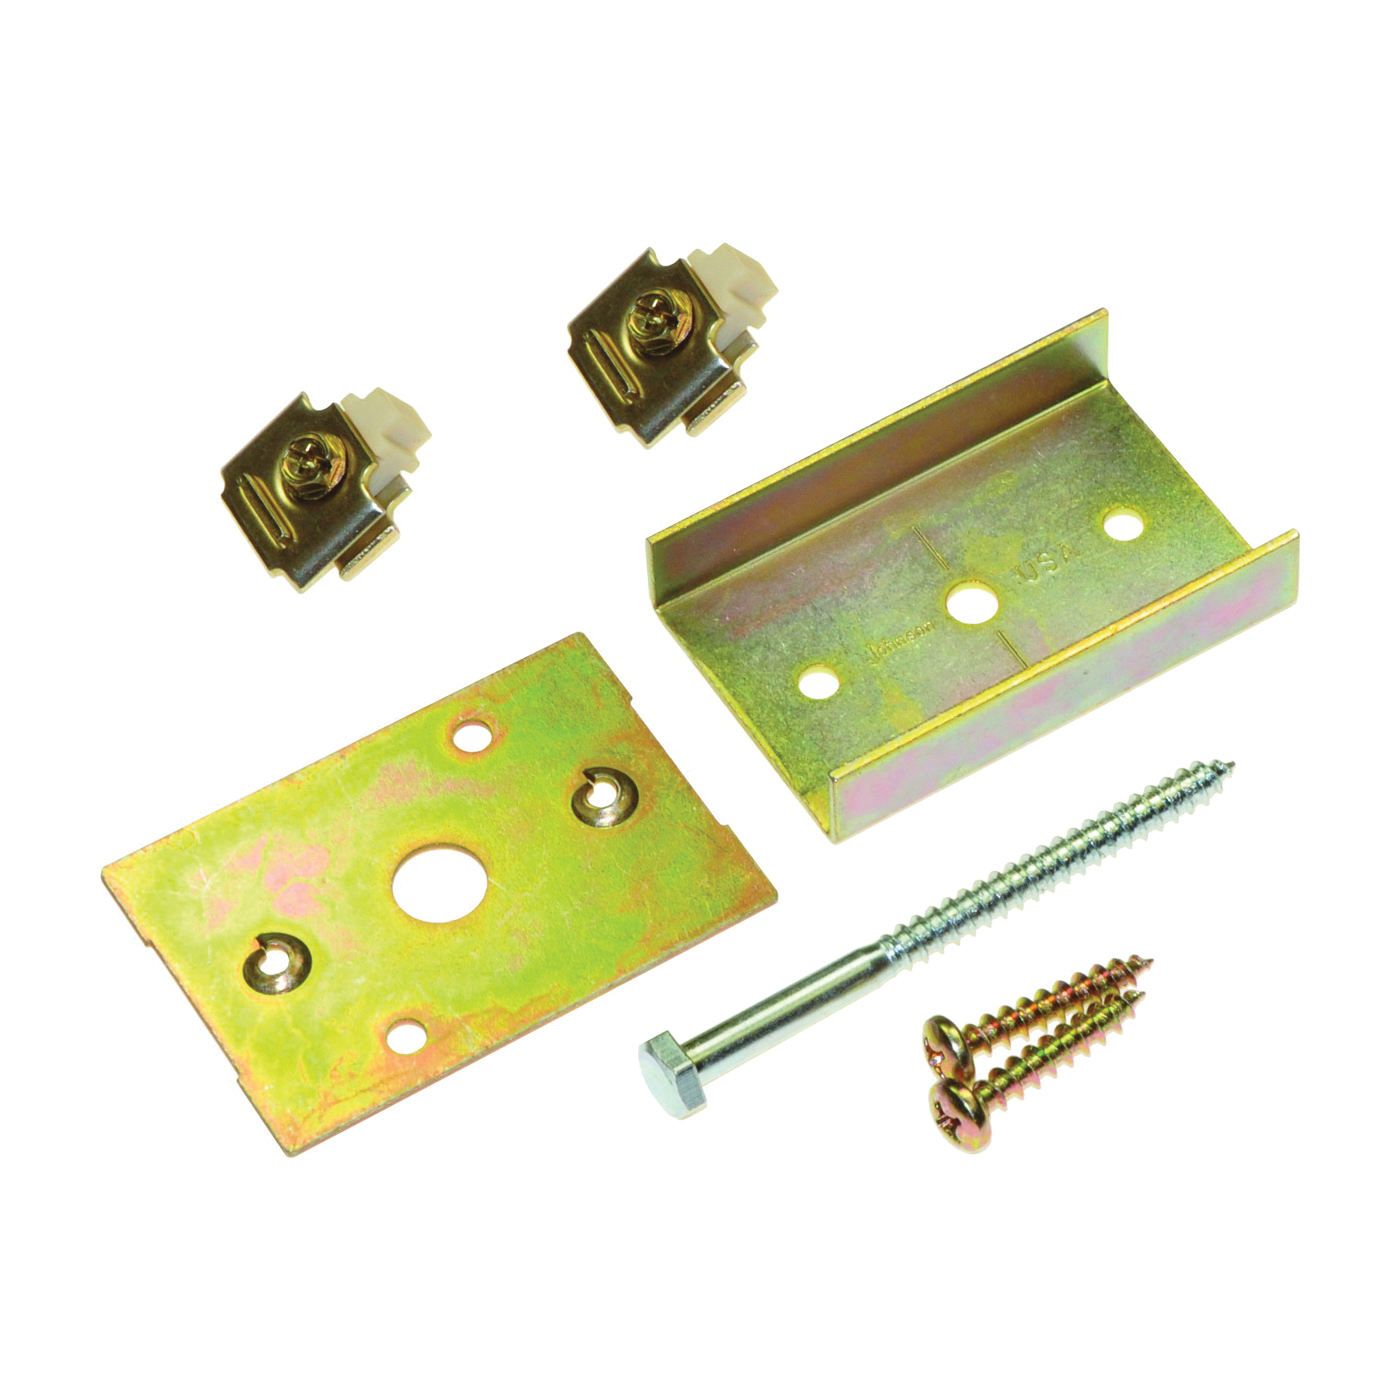 Picture of Johnson Hardware 1555PPK3 Converging Door Kit, For: 1500, 1560, 2511 Series Frame